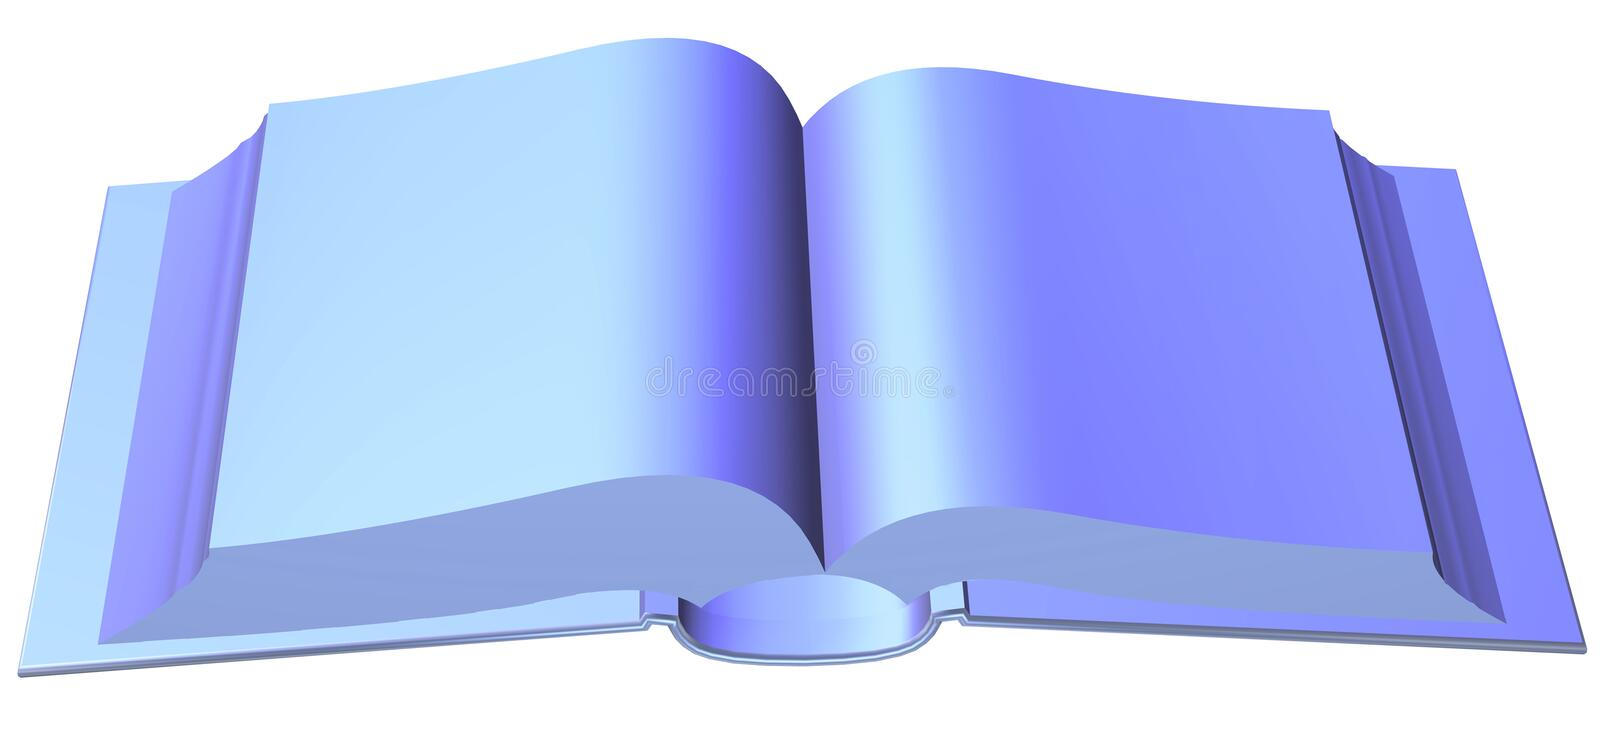 Download A book template stock illustration. Illustration of screendesign - 16055